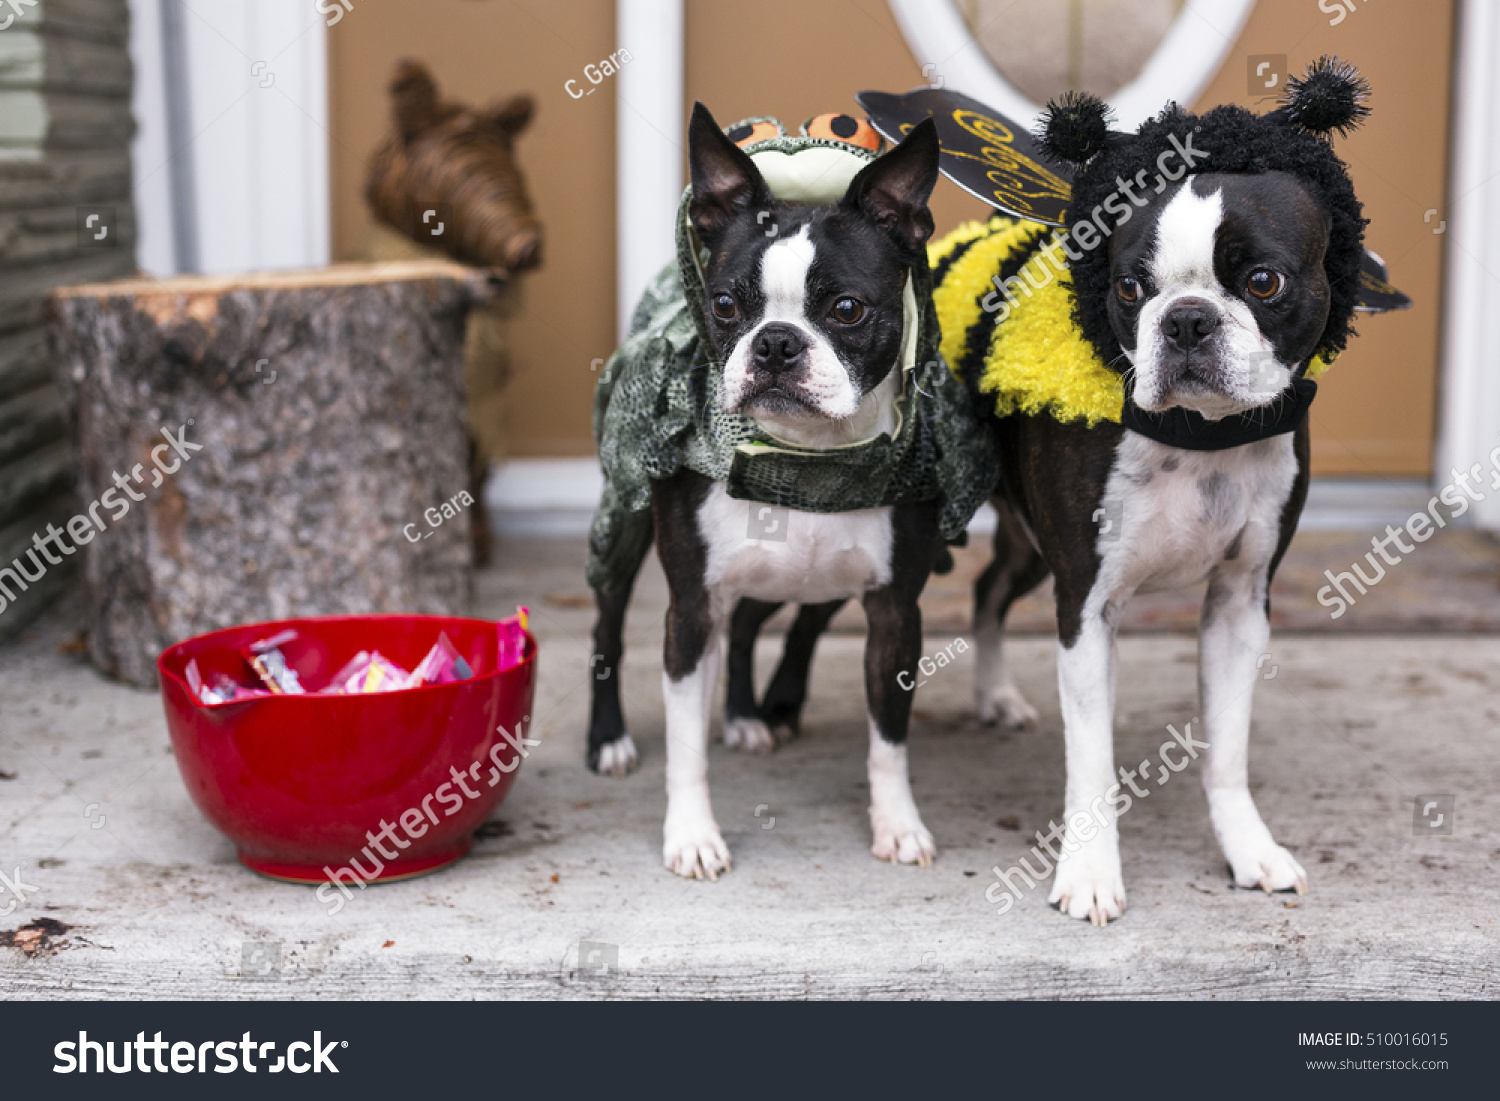 two boston terrier dogs halloween costumes stock photo (edit now